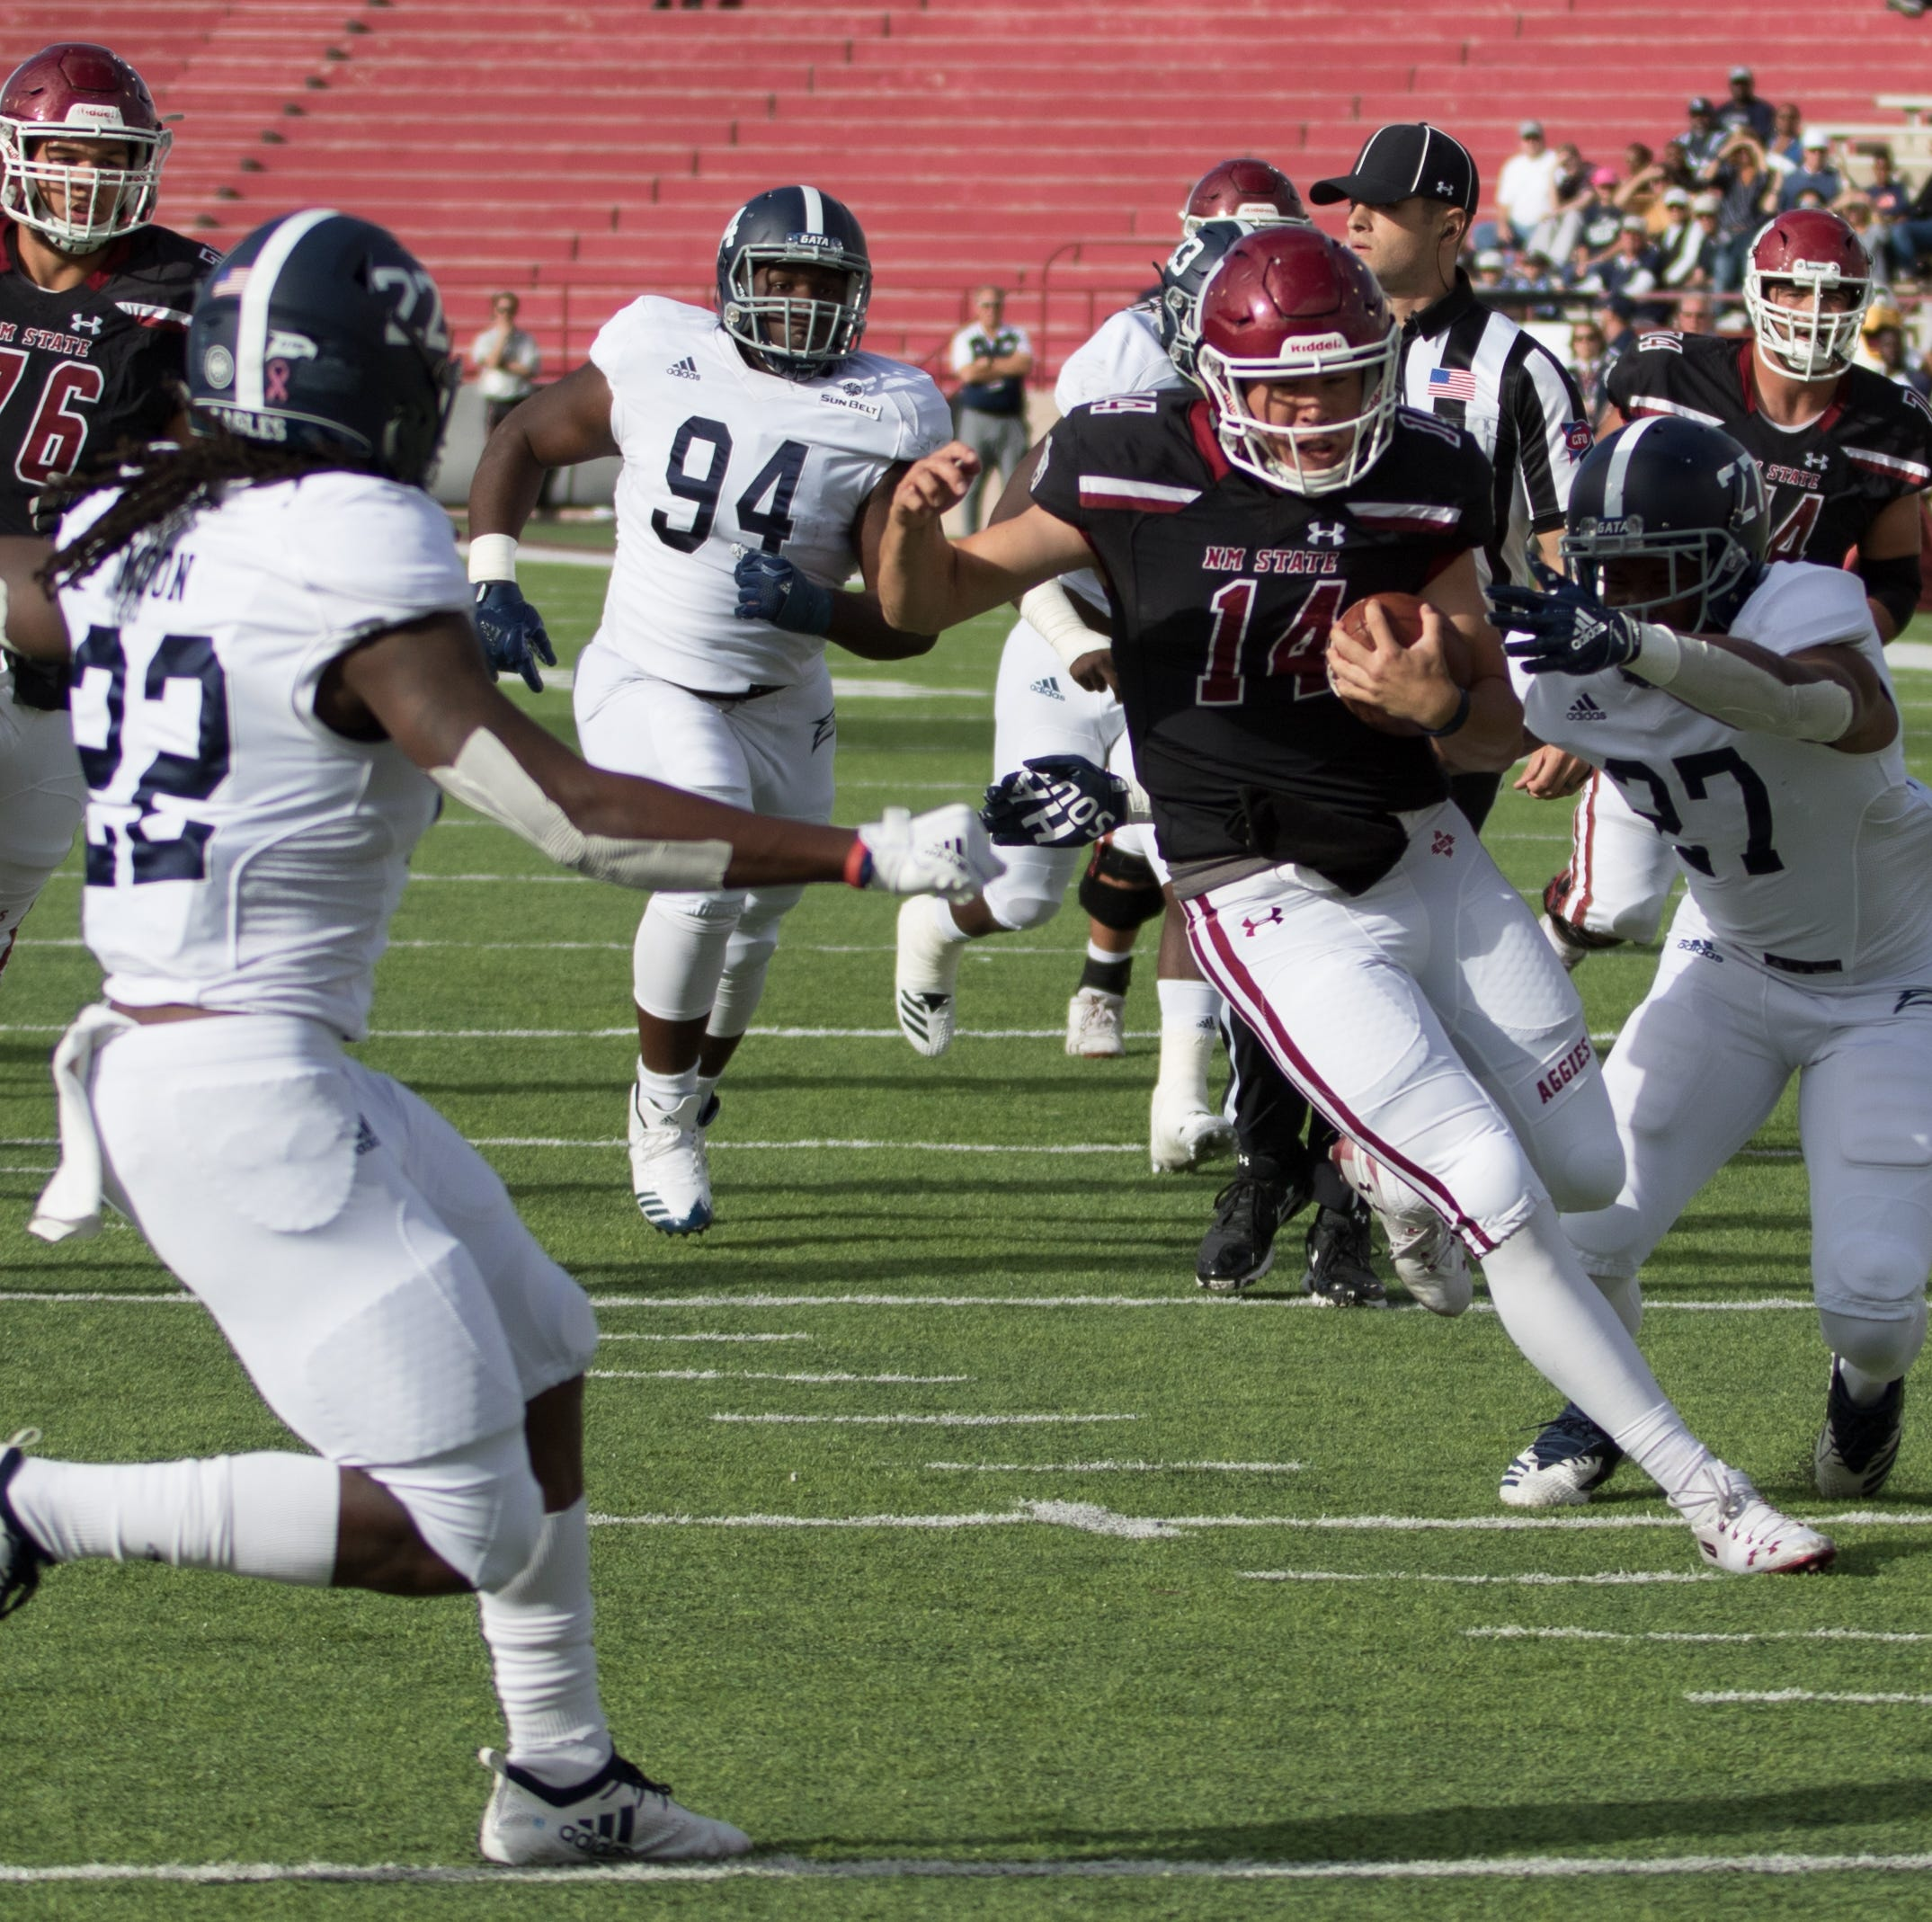 New Mexico State hosts Georgia Southern